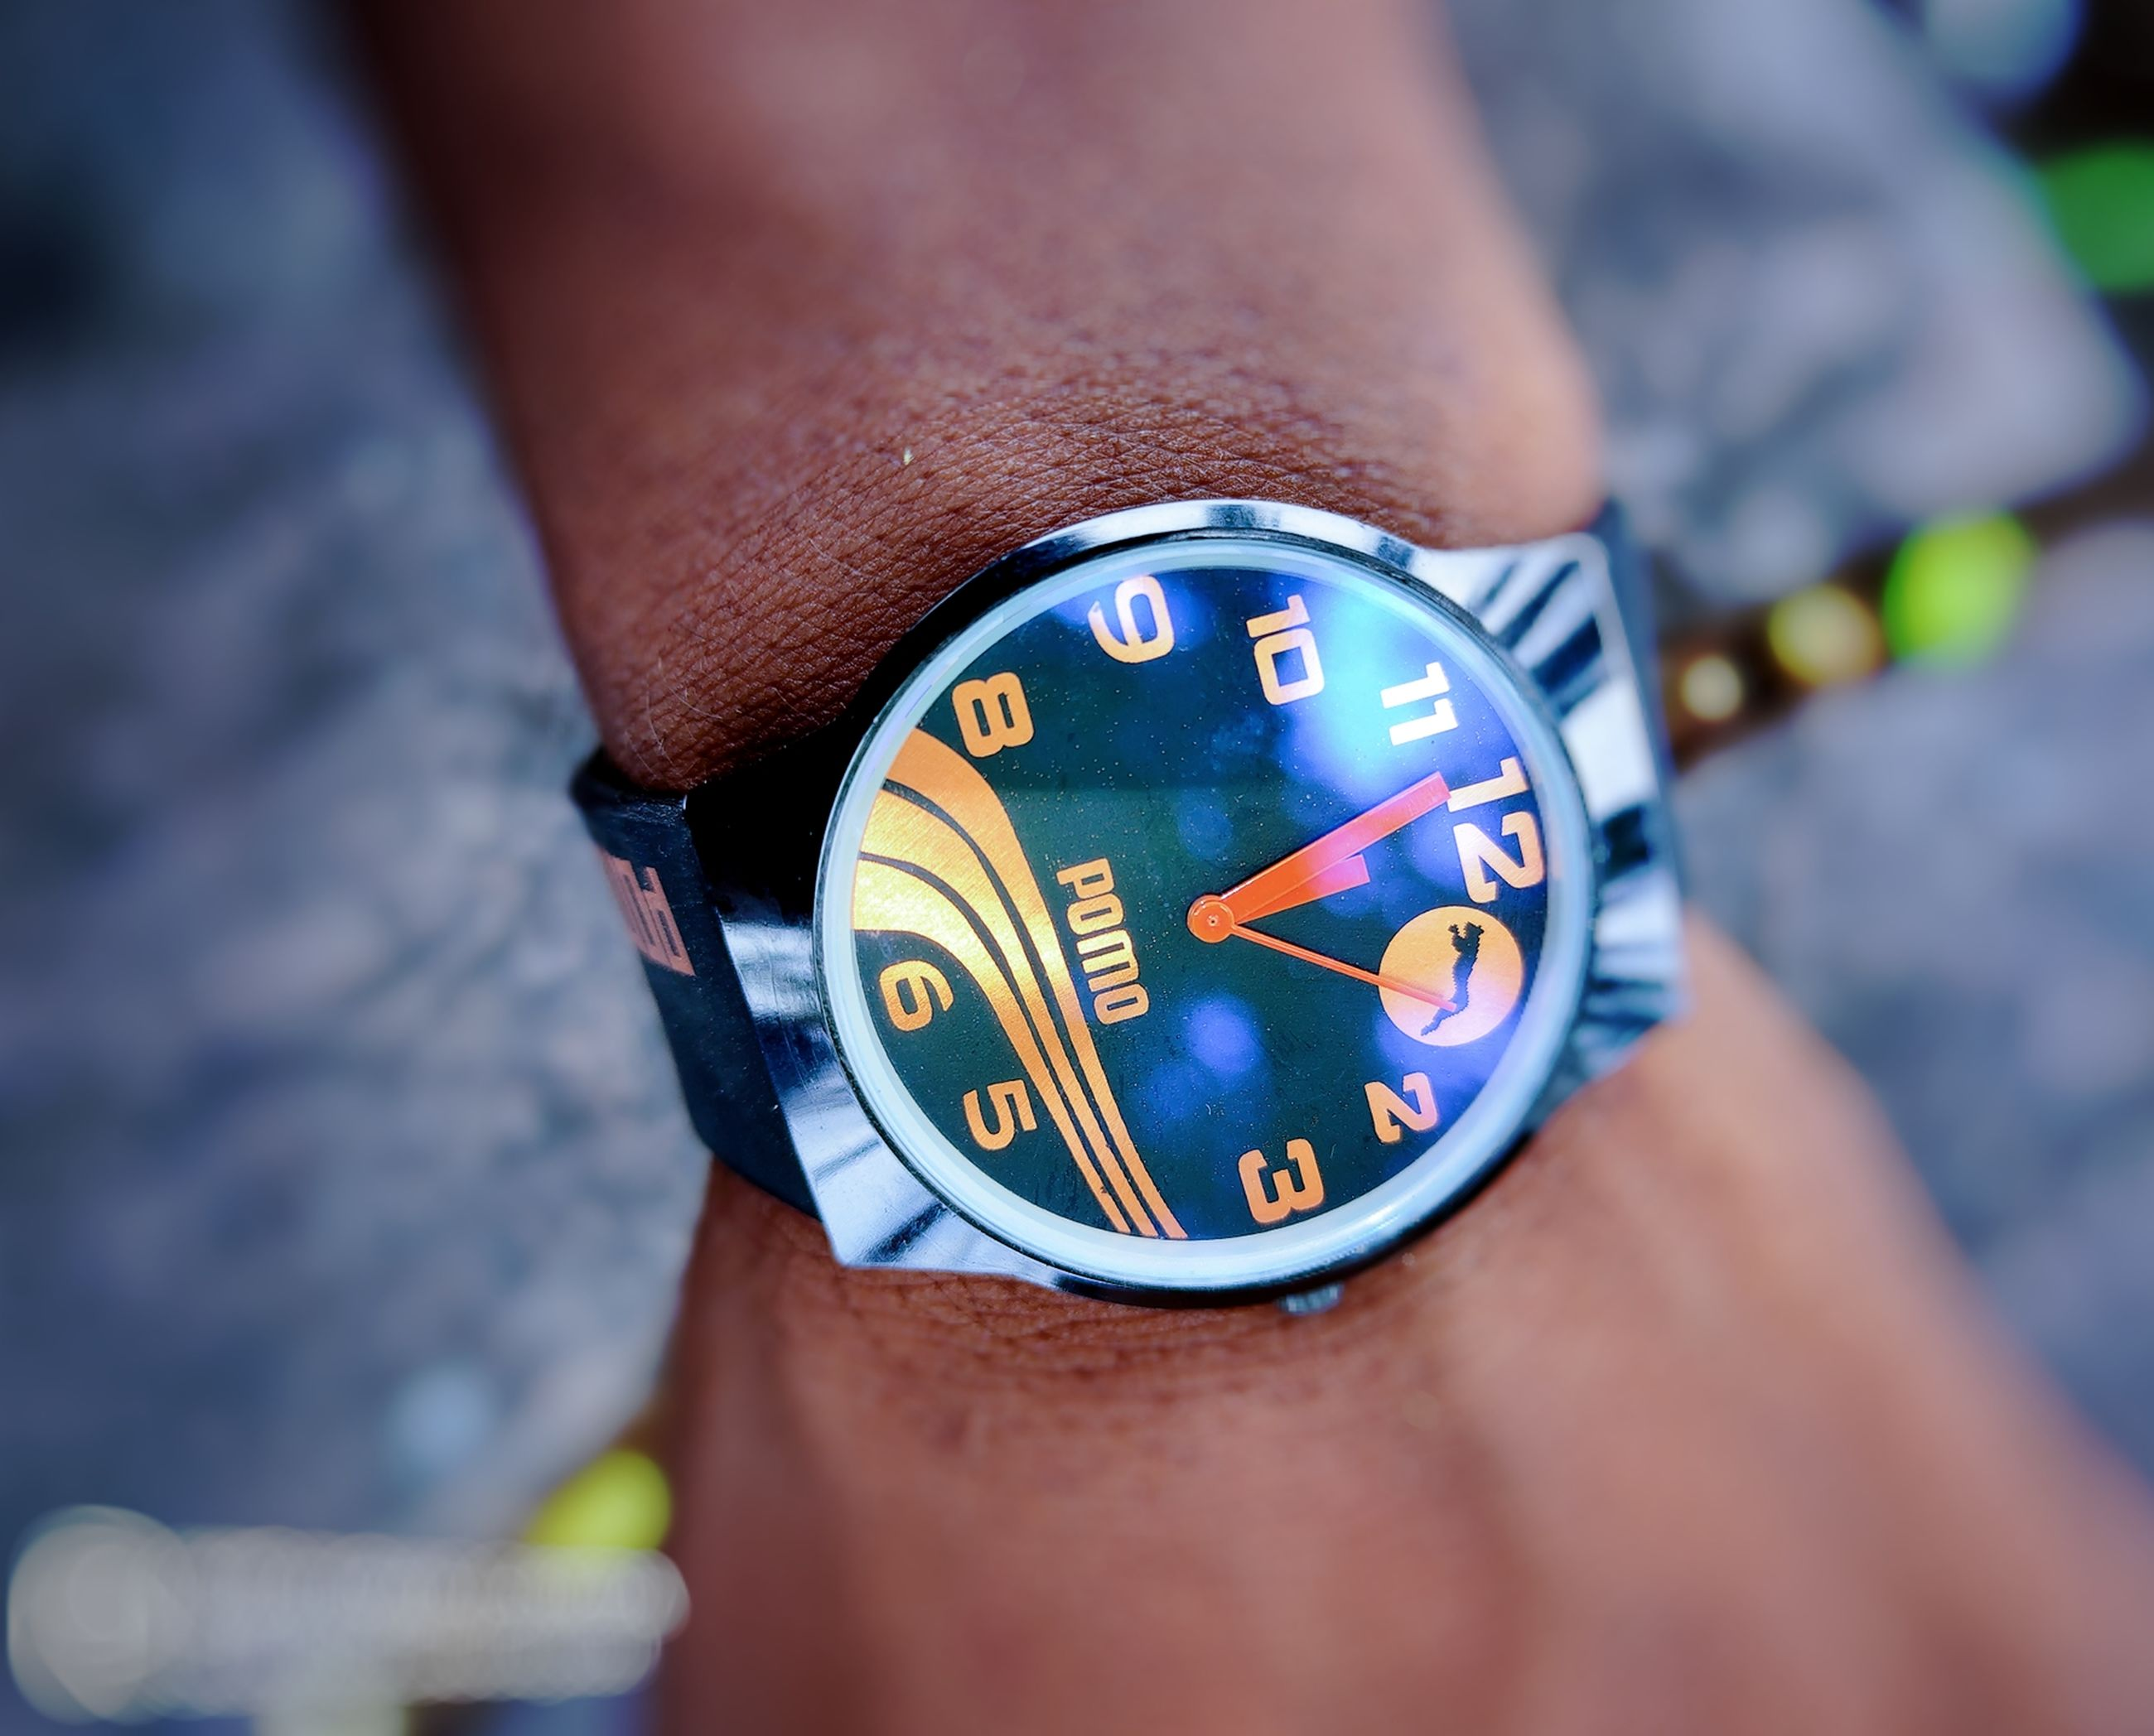 watch, blue, time, wristwatch, clock, close-up, one person, hand, adult, strap, human joint, yellow, instrument of time, accuracy, men, checking the time, lifestyles, day, outdoors